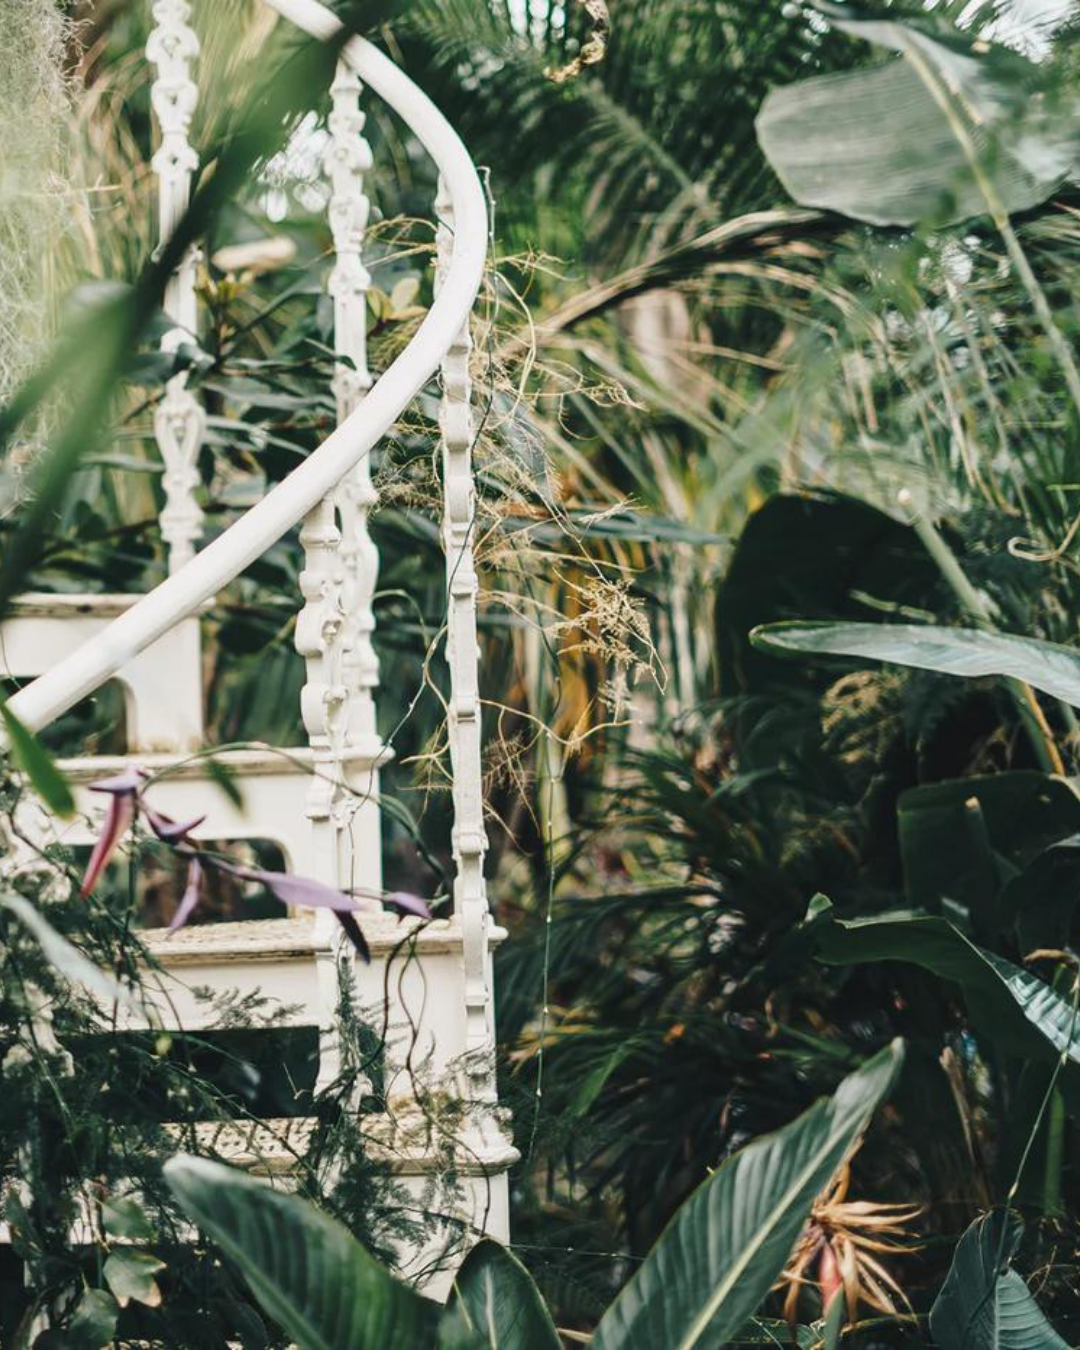 A white spiral staircase almost totally obscured by different plants